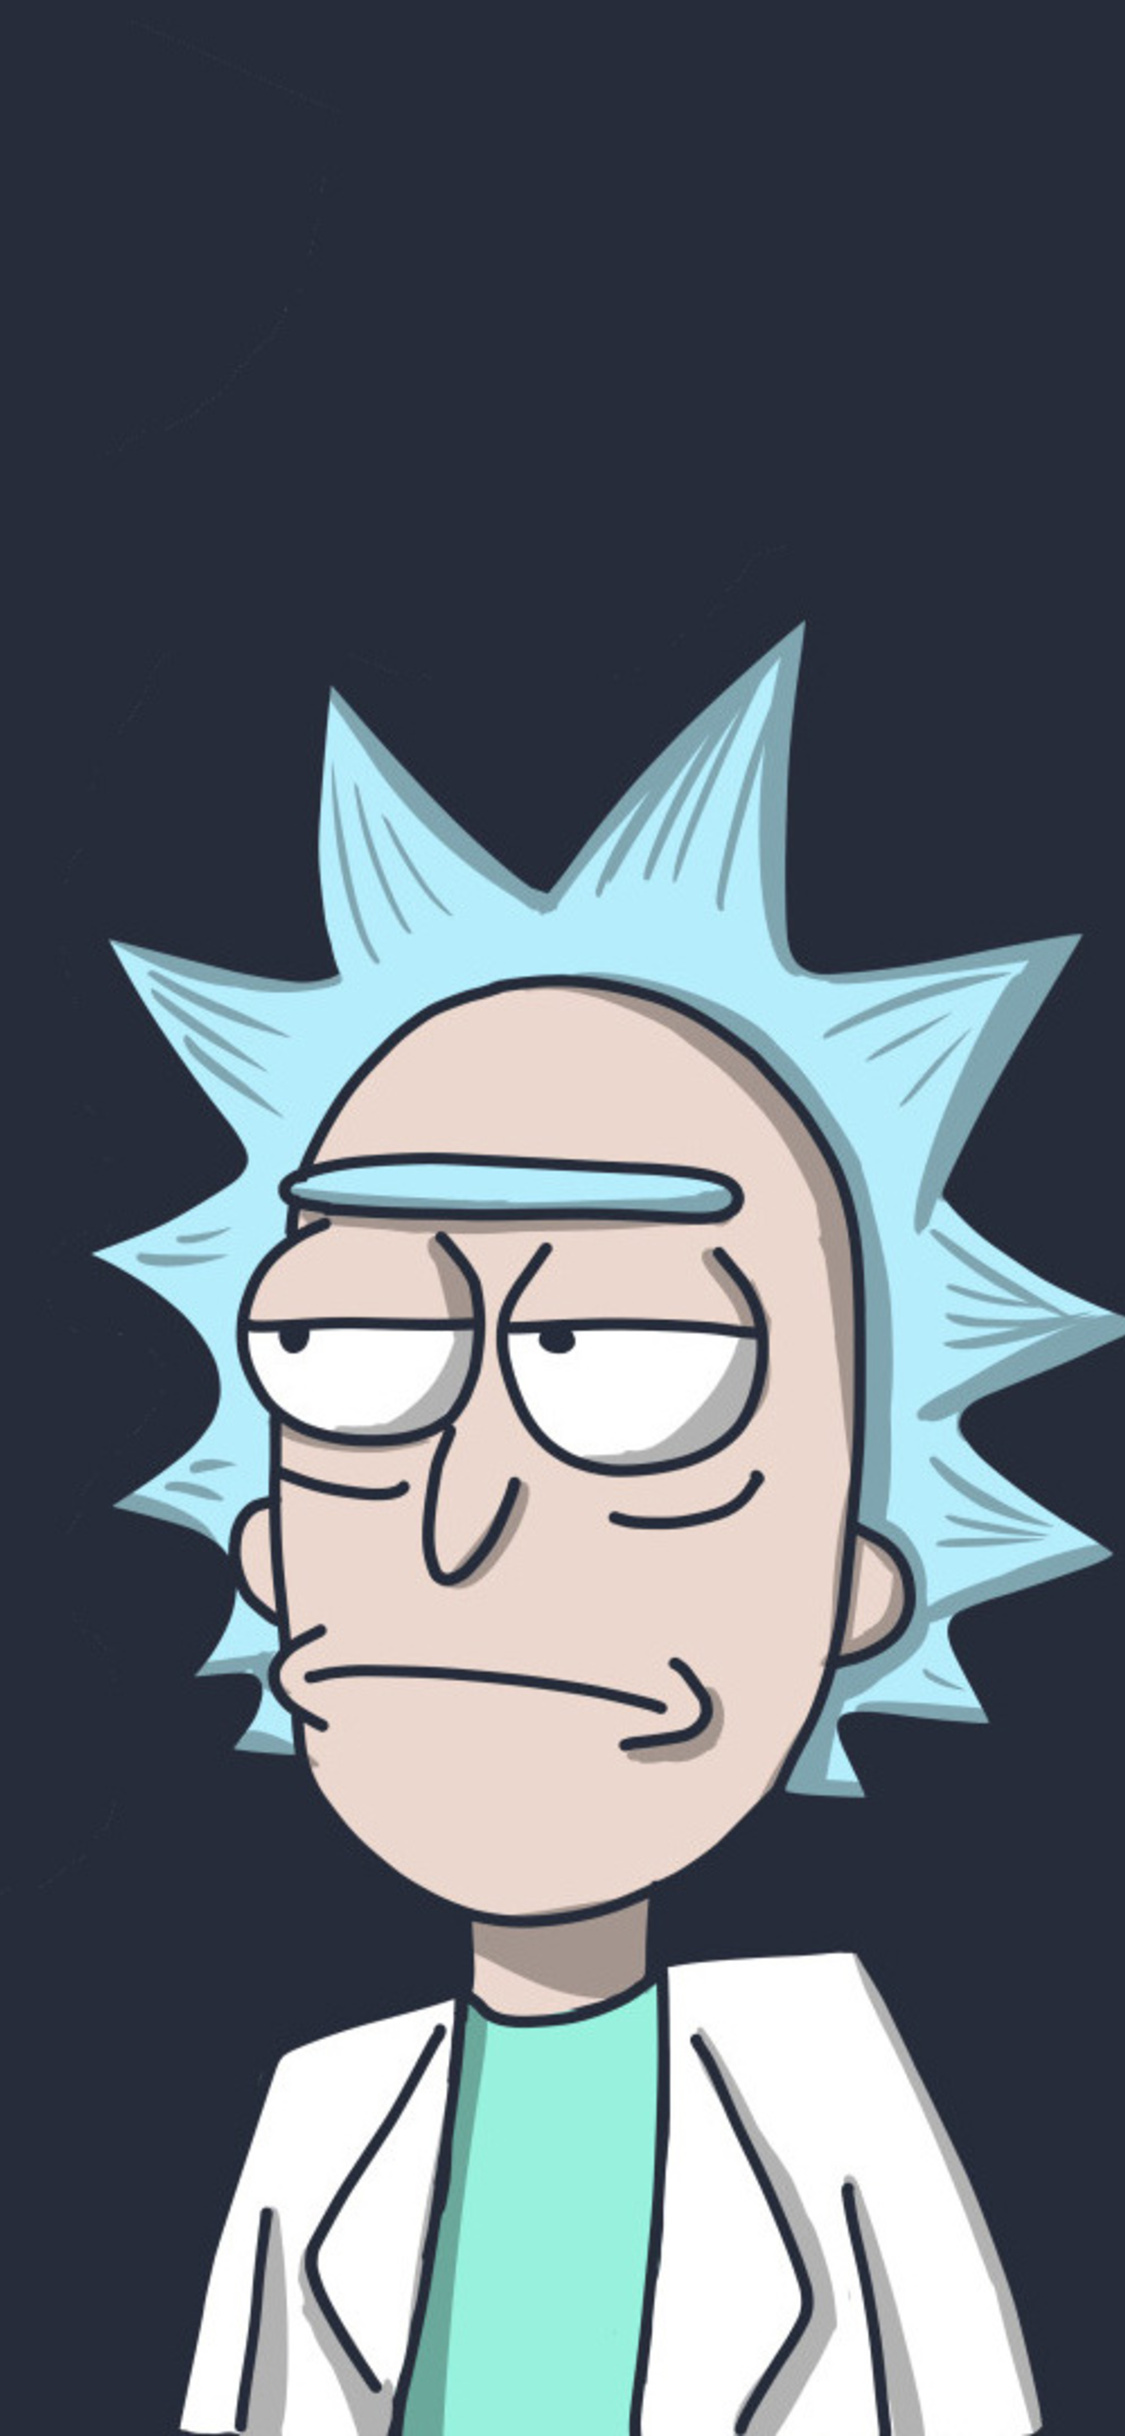 1125x2436 rick in rick and morty iphone xs iphone 10 iphone x hd 4k.